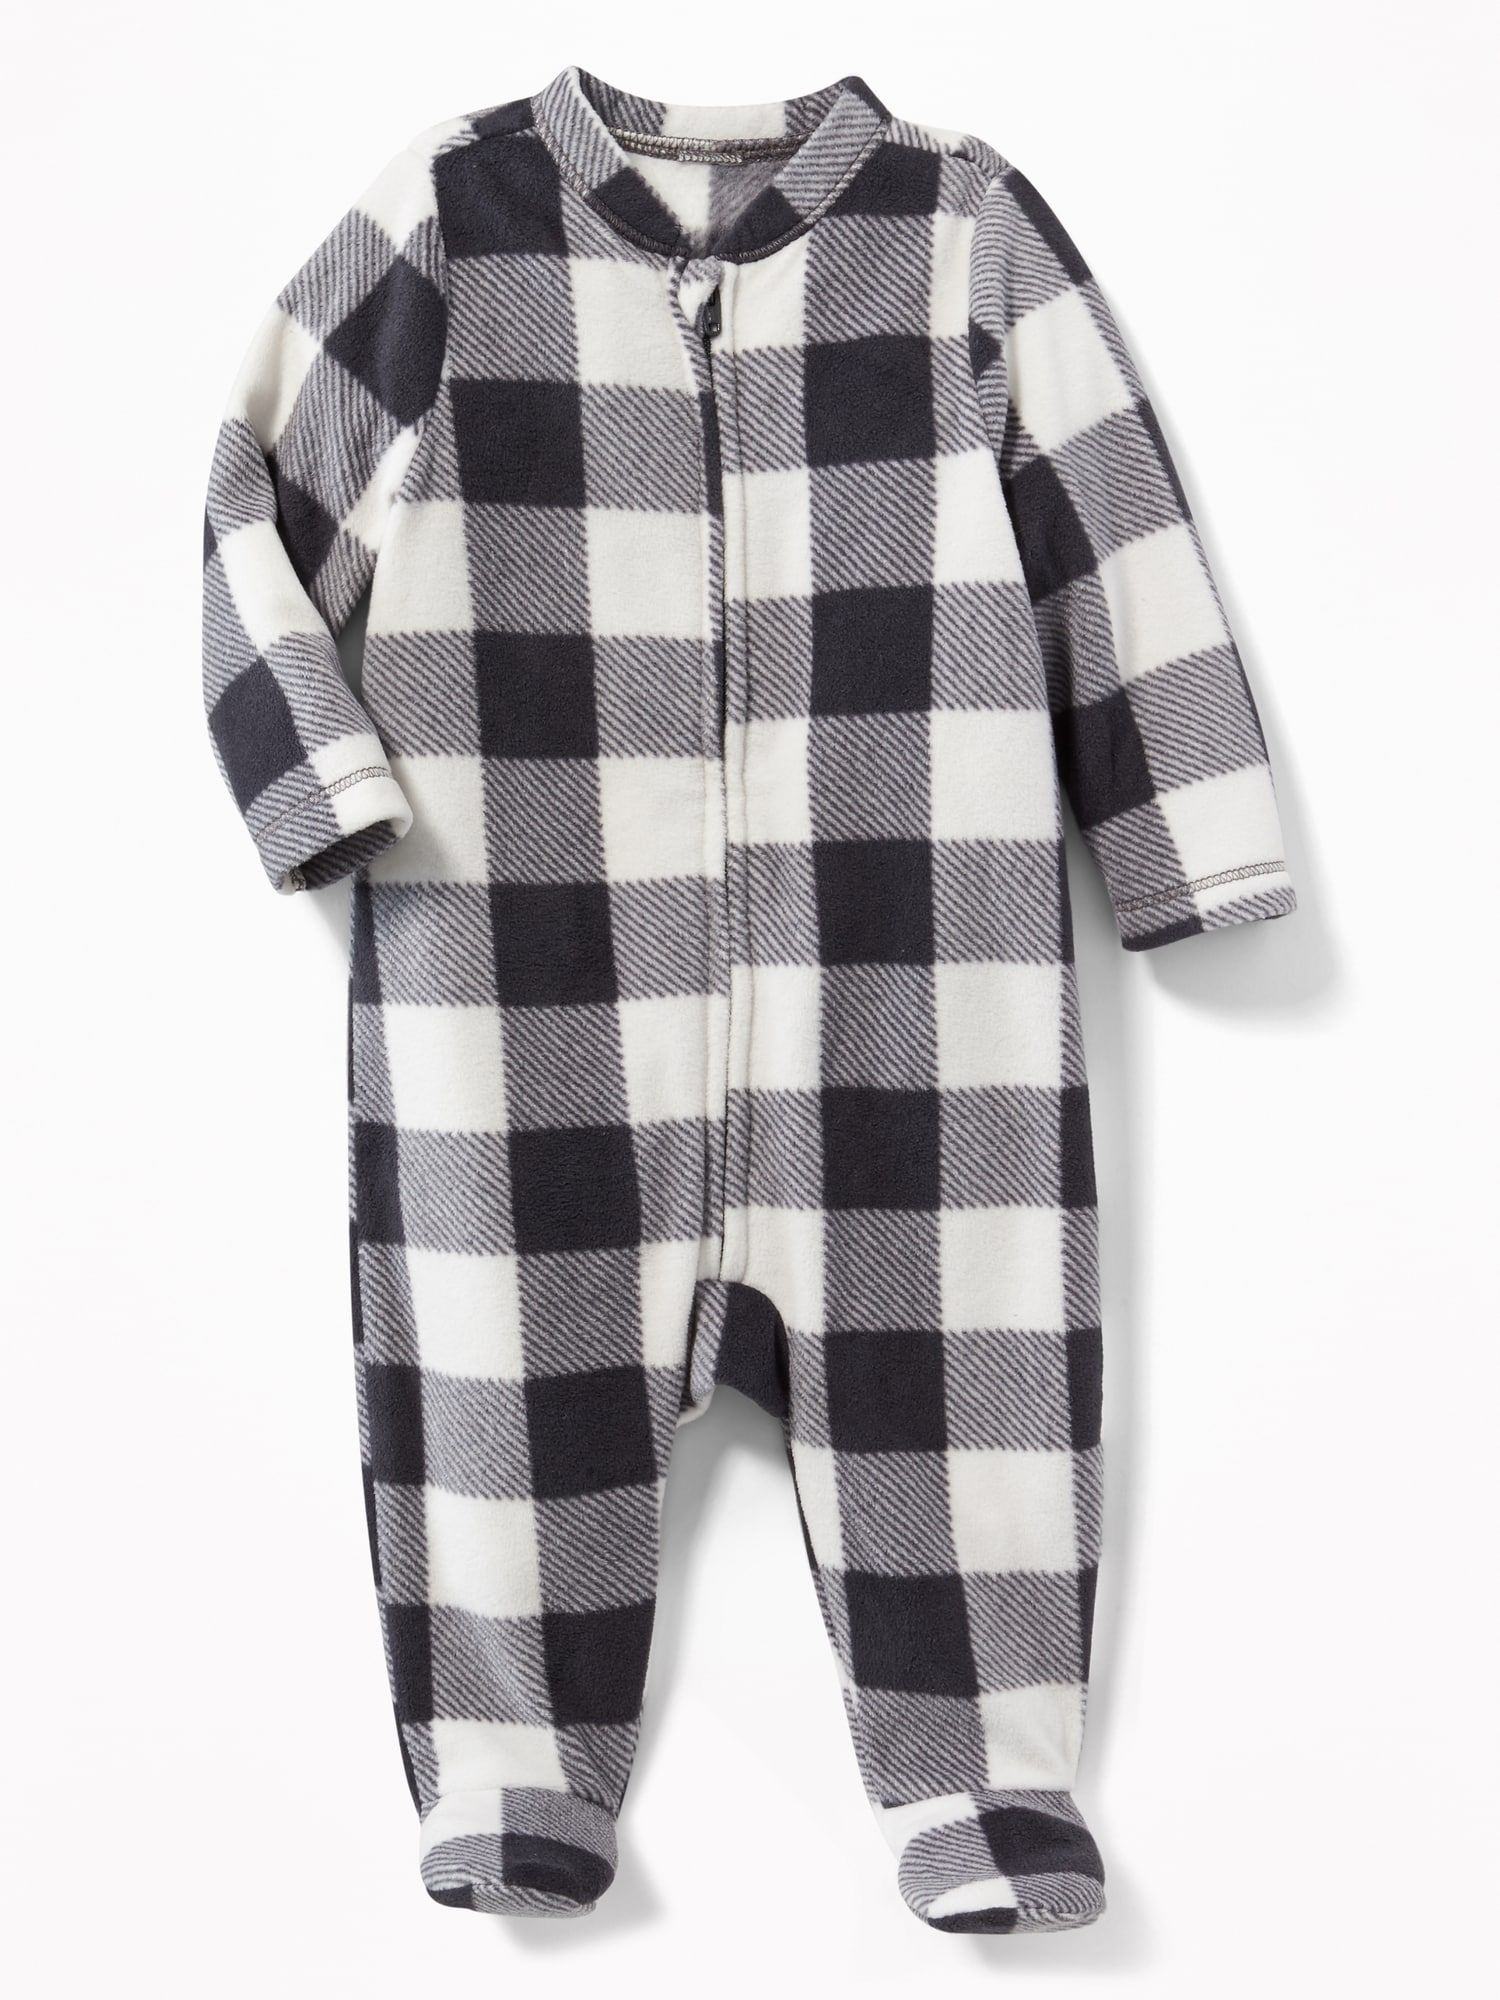 2a9f25d40 Plain Baby sleepers 3-6 months and bigger gap